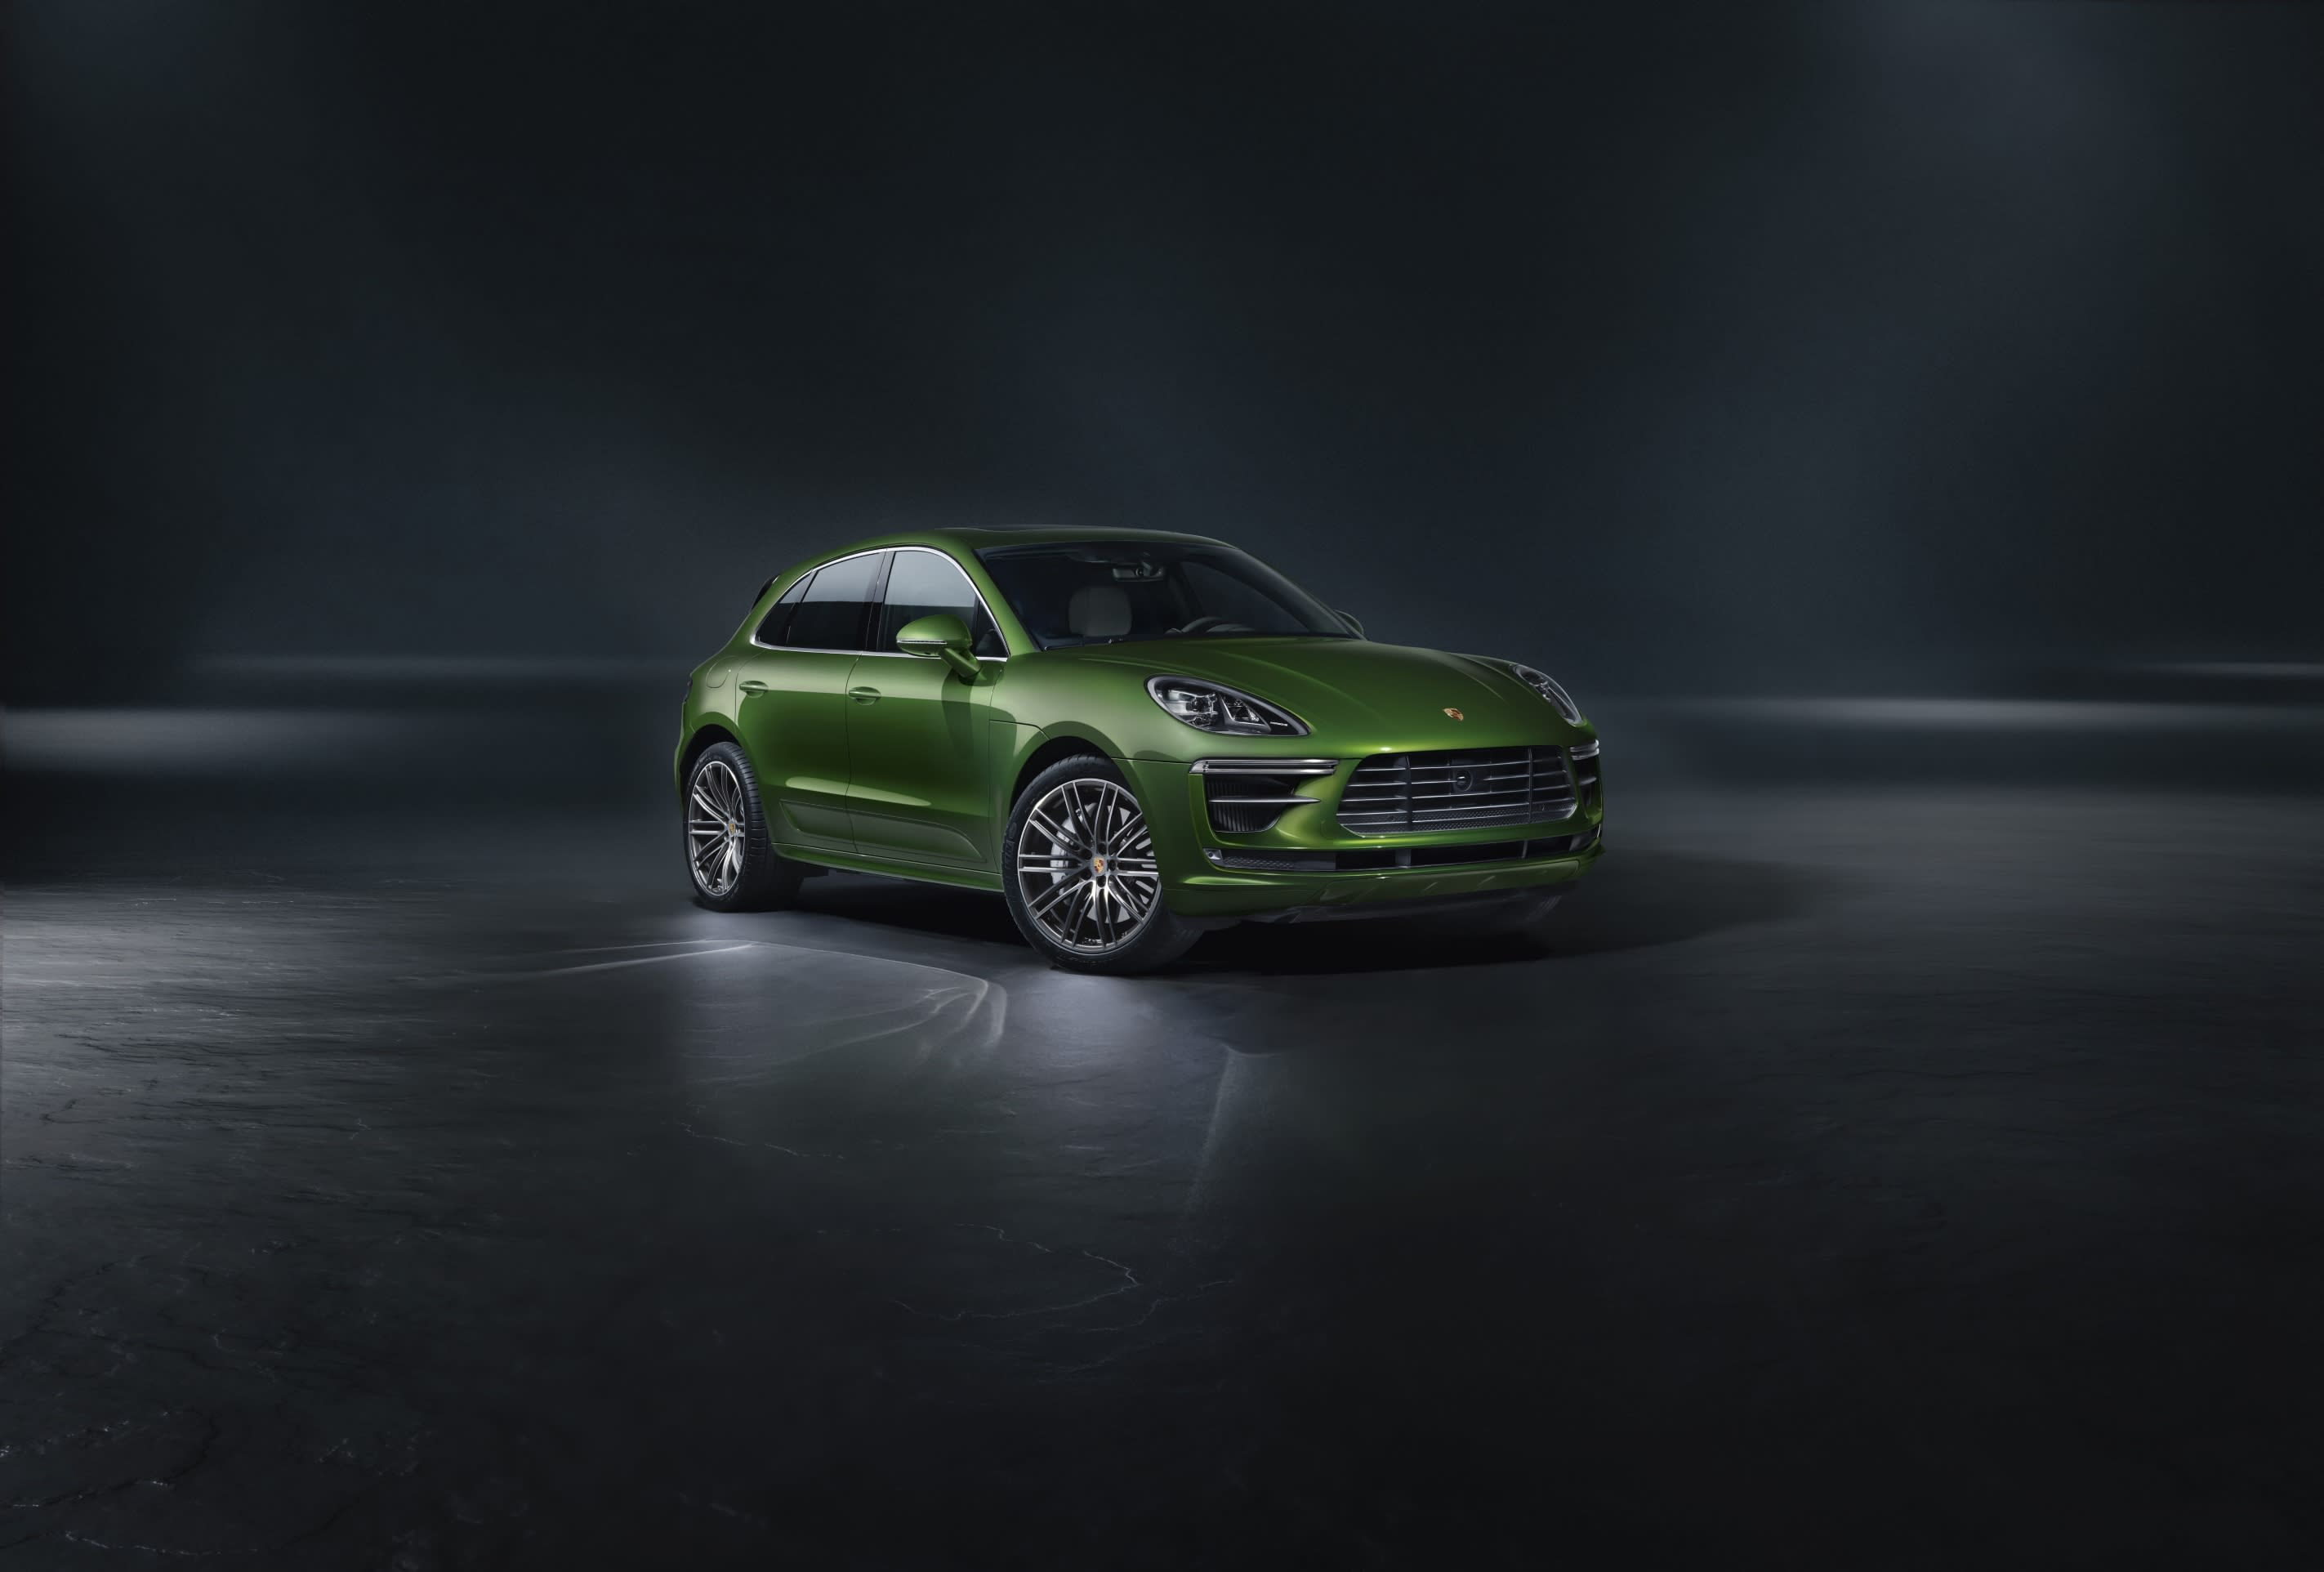 Macan Turbo features a 2.9L biturbo six-cylinder